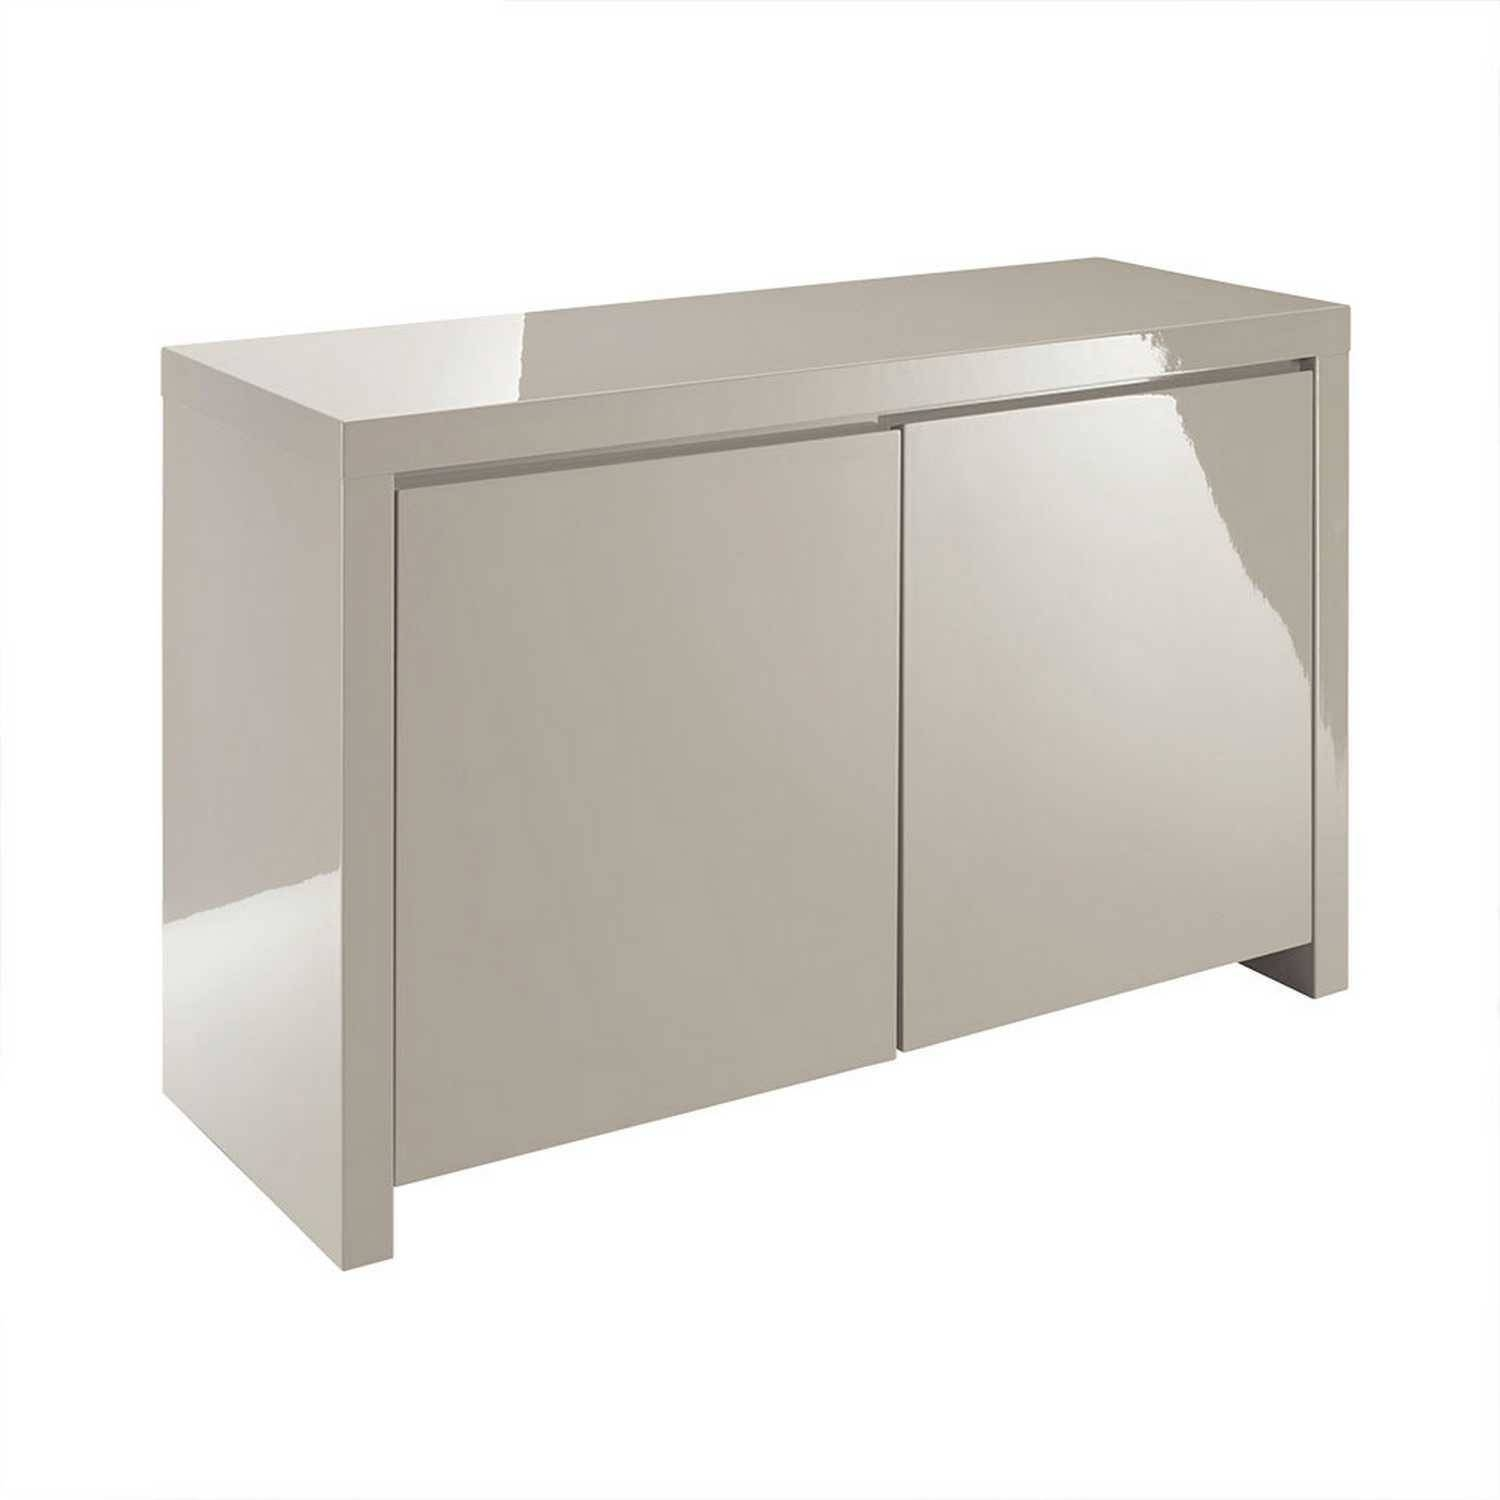 Puro Sideboard Pertaining To High Gloss Cream Sideboards (View 4 of 15)